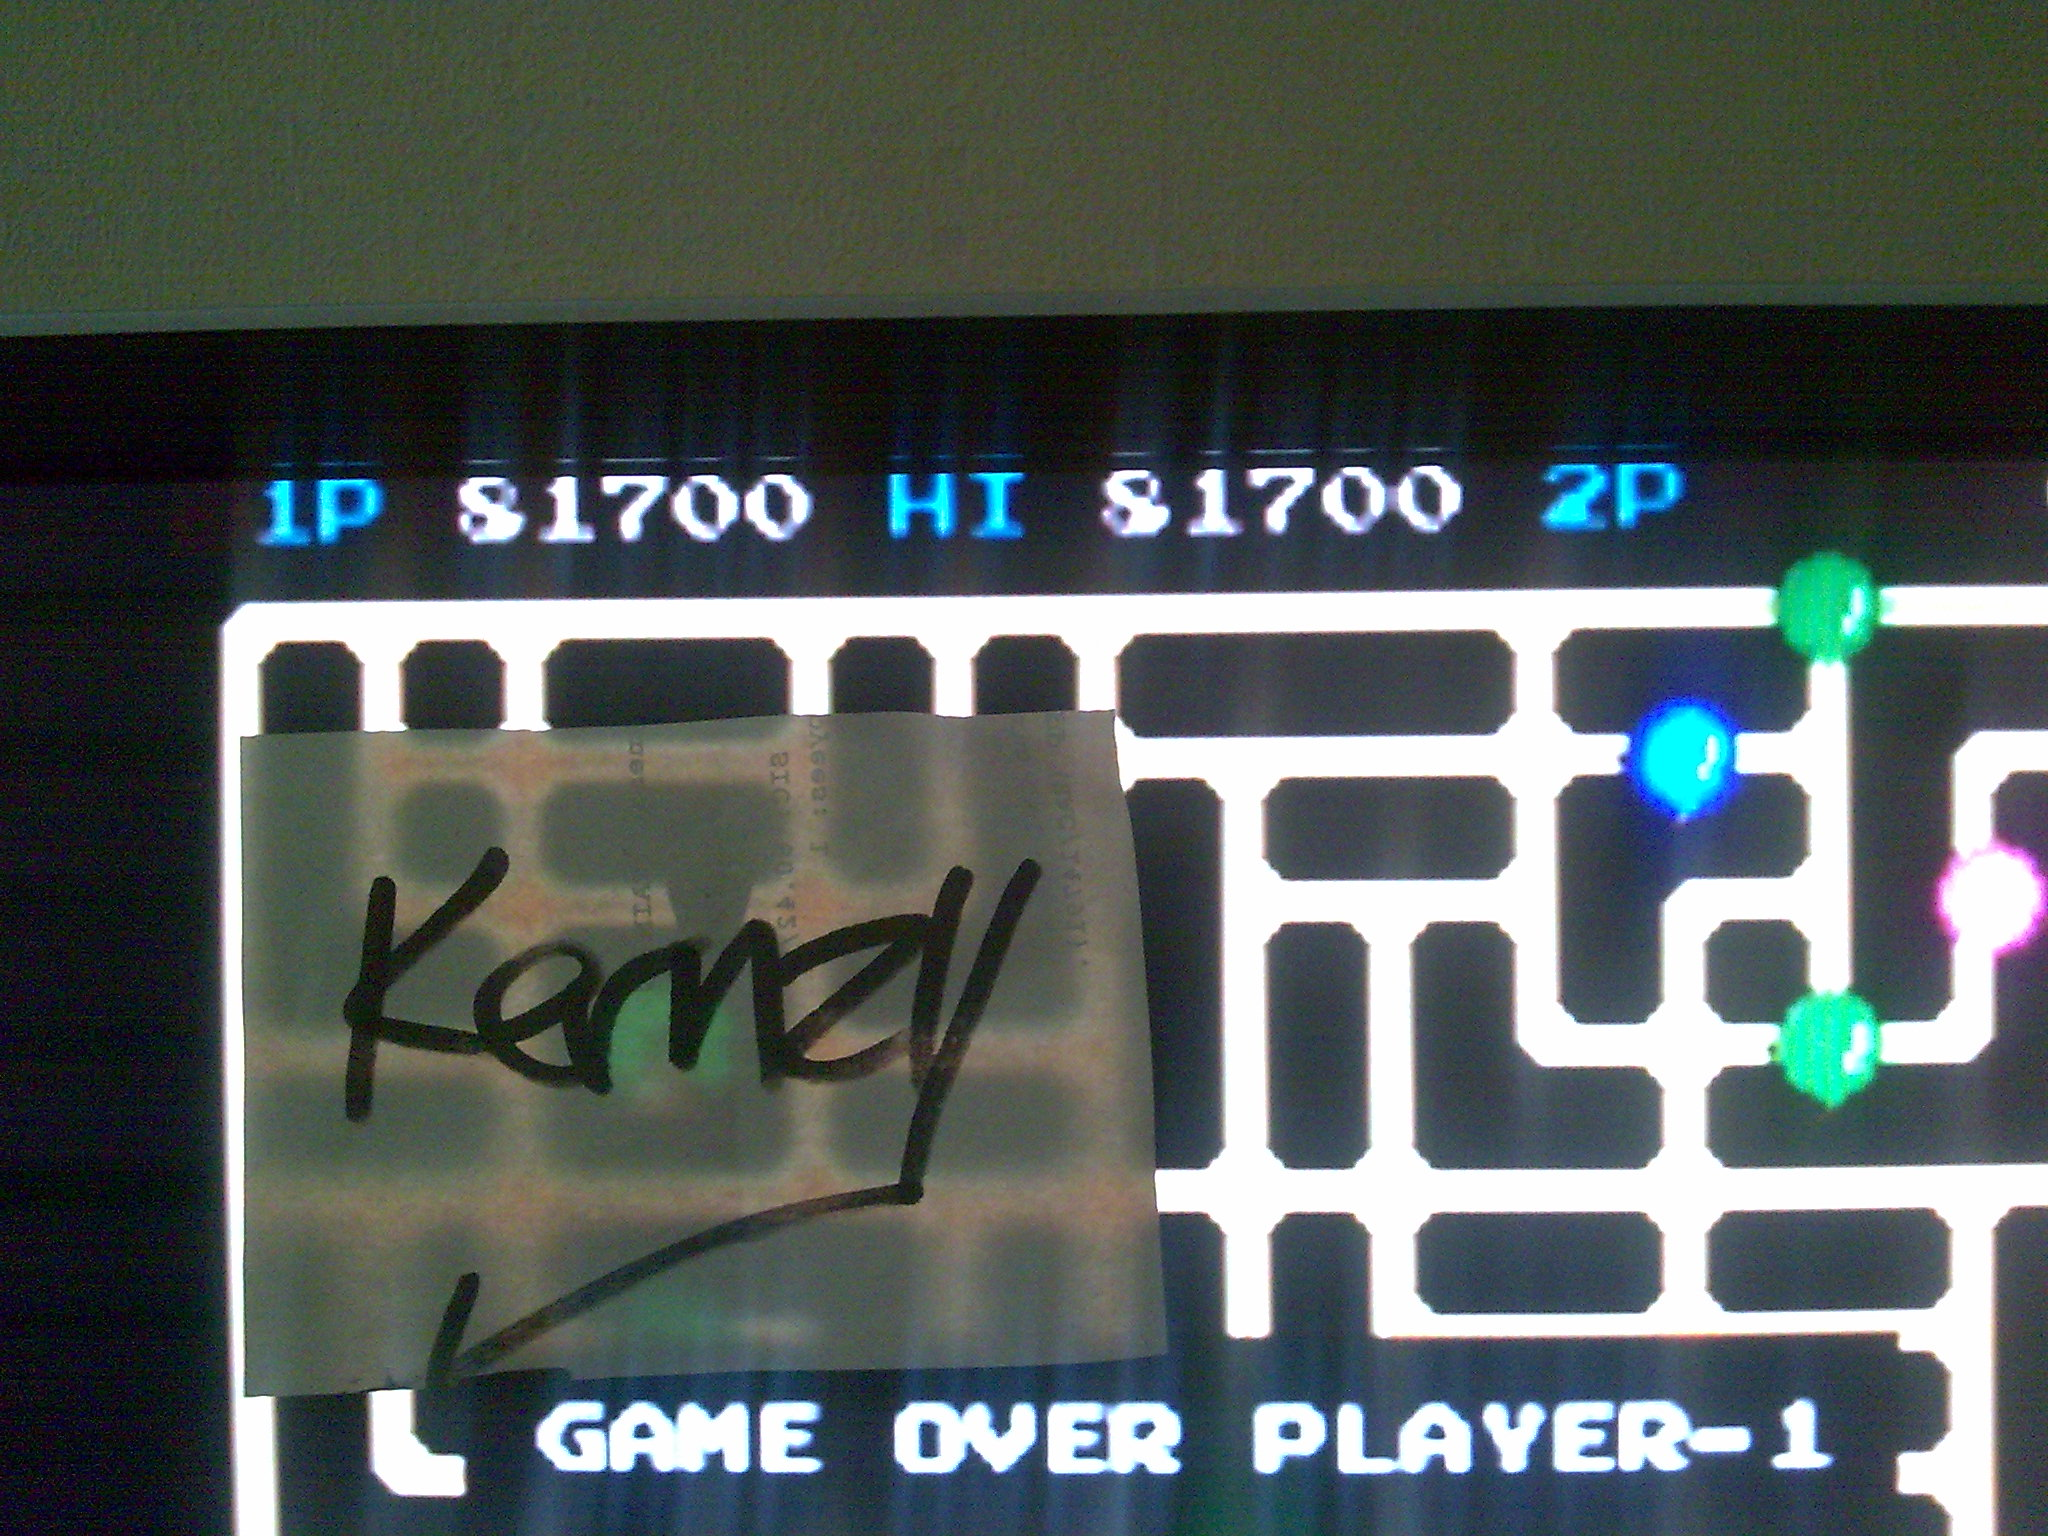 kernzy: Van-Van Car [vanvanb] (Arcade Emulated / M.A.M.E.) 81,700 points on 2014-08-30 05:08:29